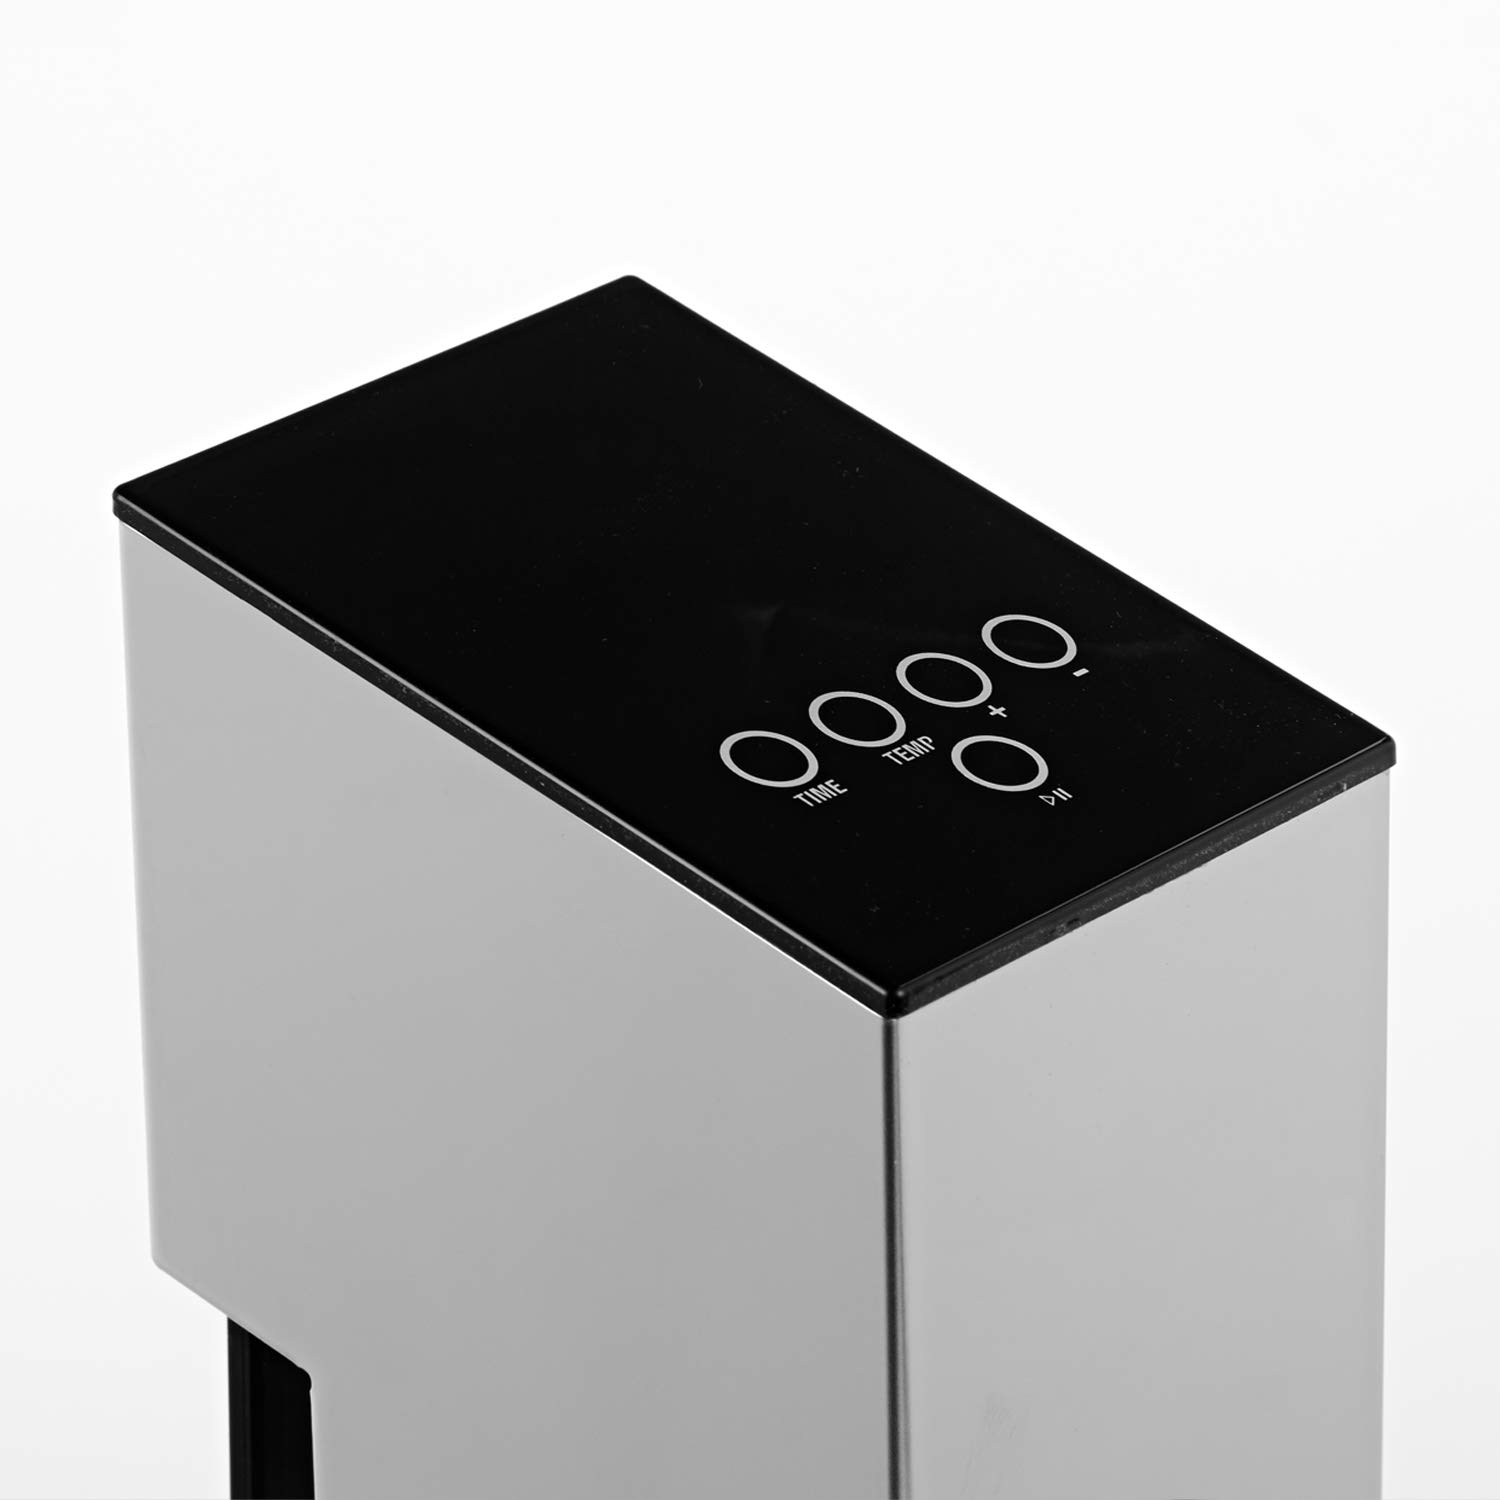 TINVOO SVC150 Sous Vide Precision Cooker 1100 Watts Immersion Circulator Built-in Patented H-B-C system w/Accurate Temperature, Programmable Digital Touch Screen Display(Chef Series) by tinvoo (Image #4)